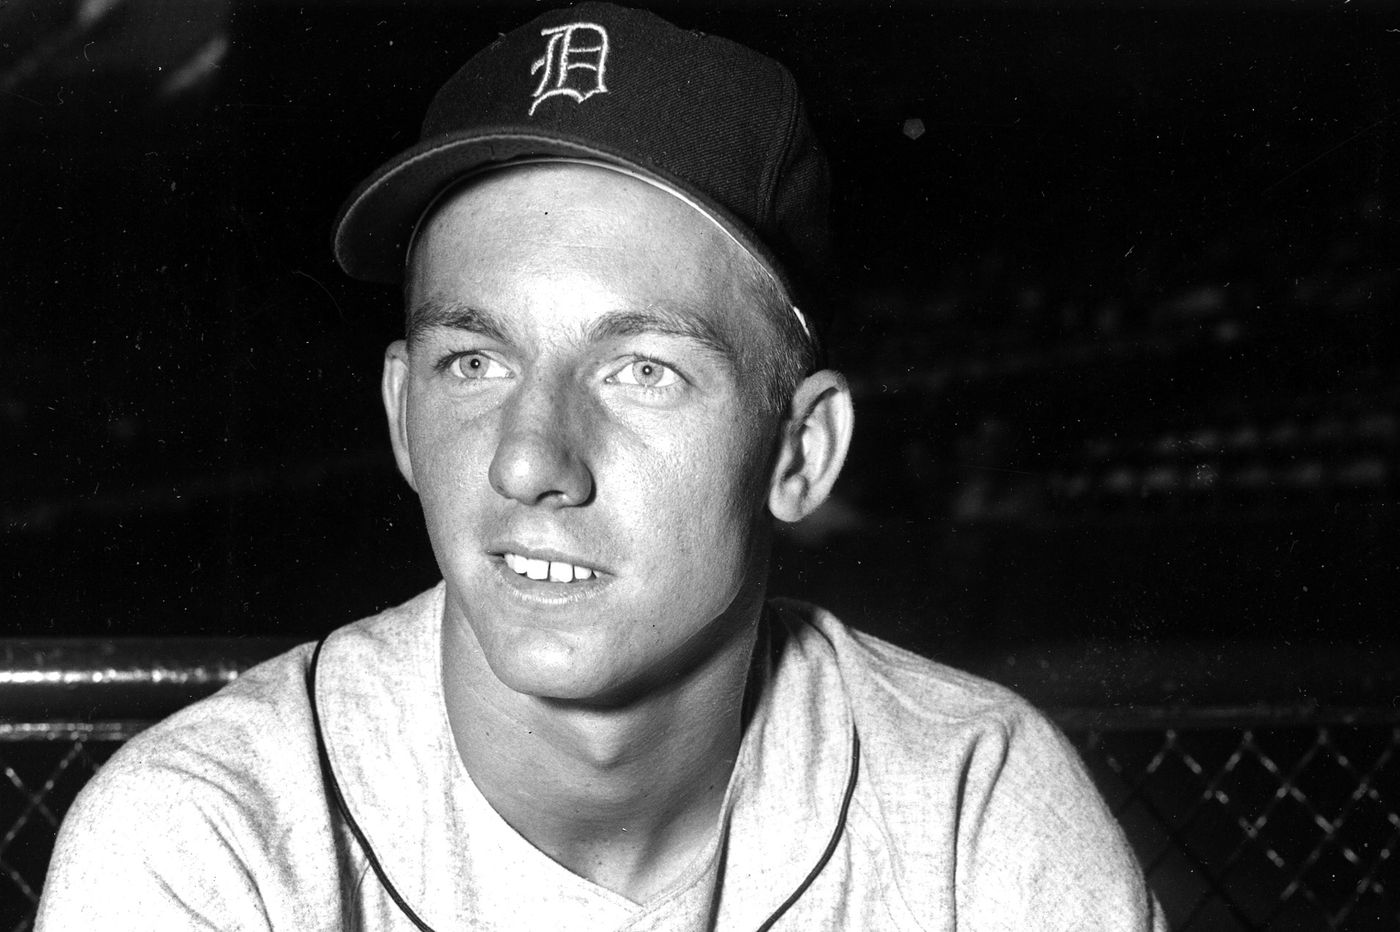 Al Kaline would not have been 'Mr. Tiger' if the Phillies had their way